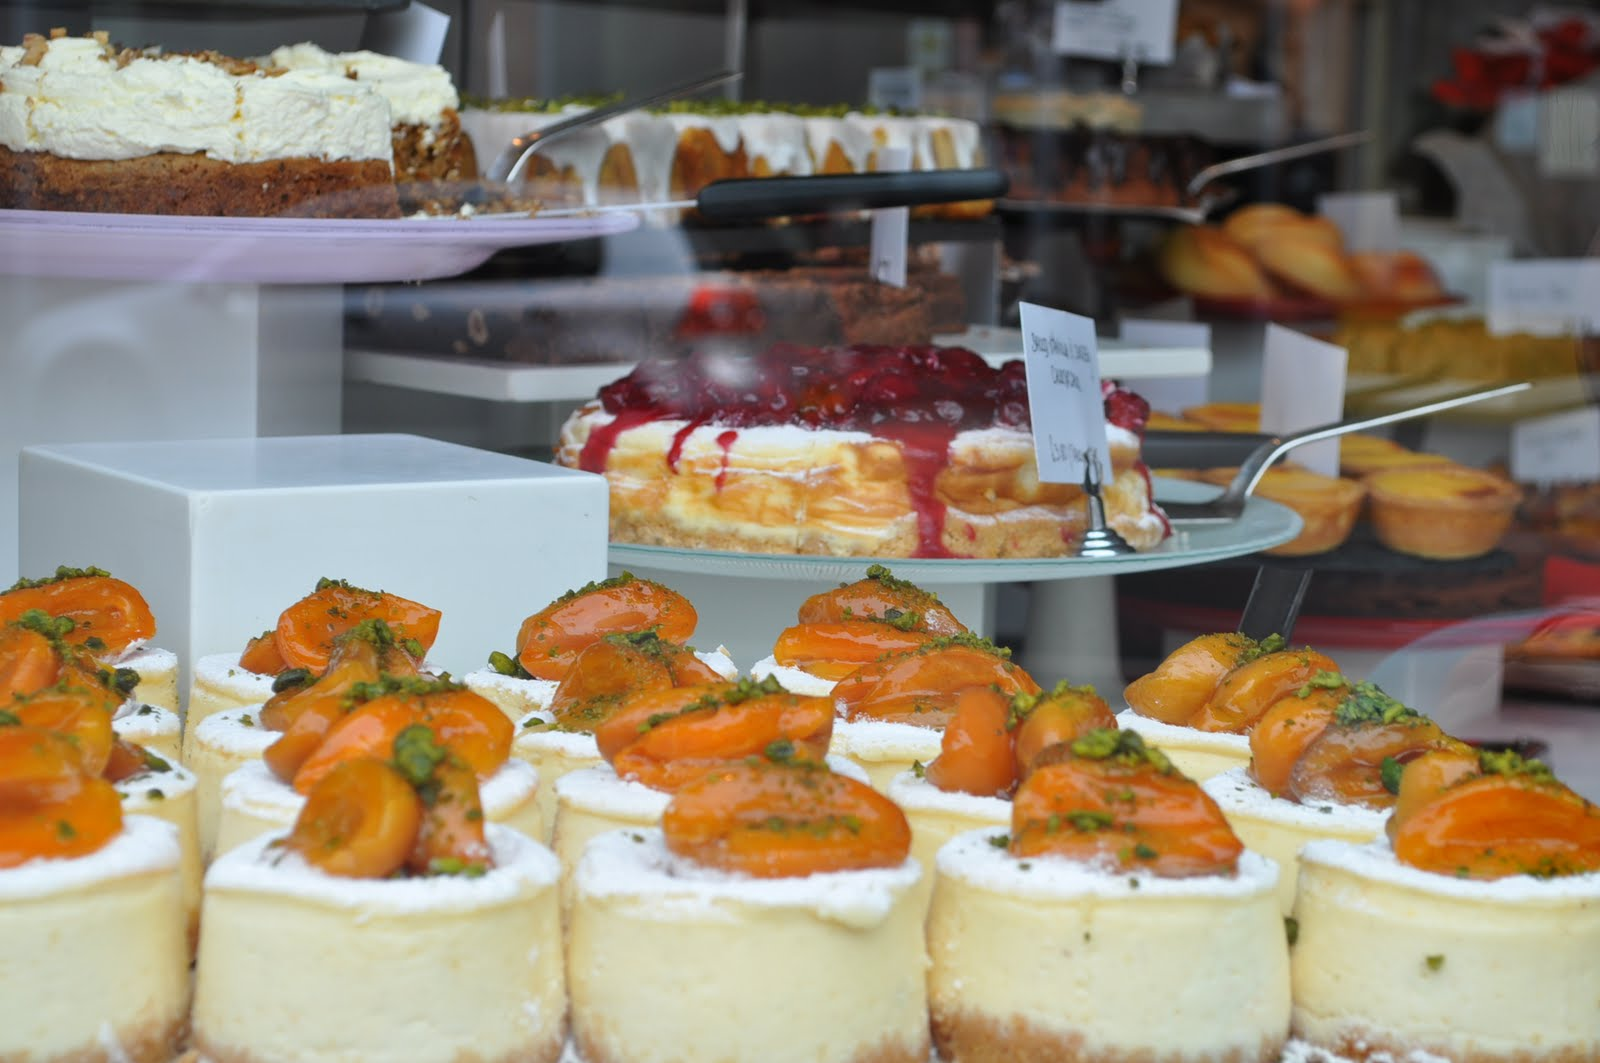 Vegetarian Cakes And Pastries Bakery Store